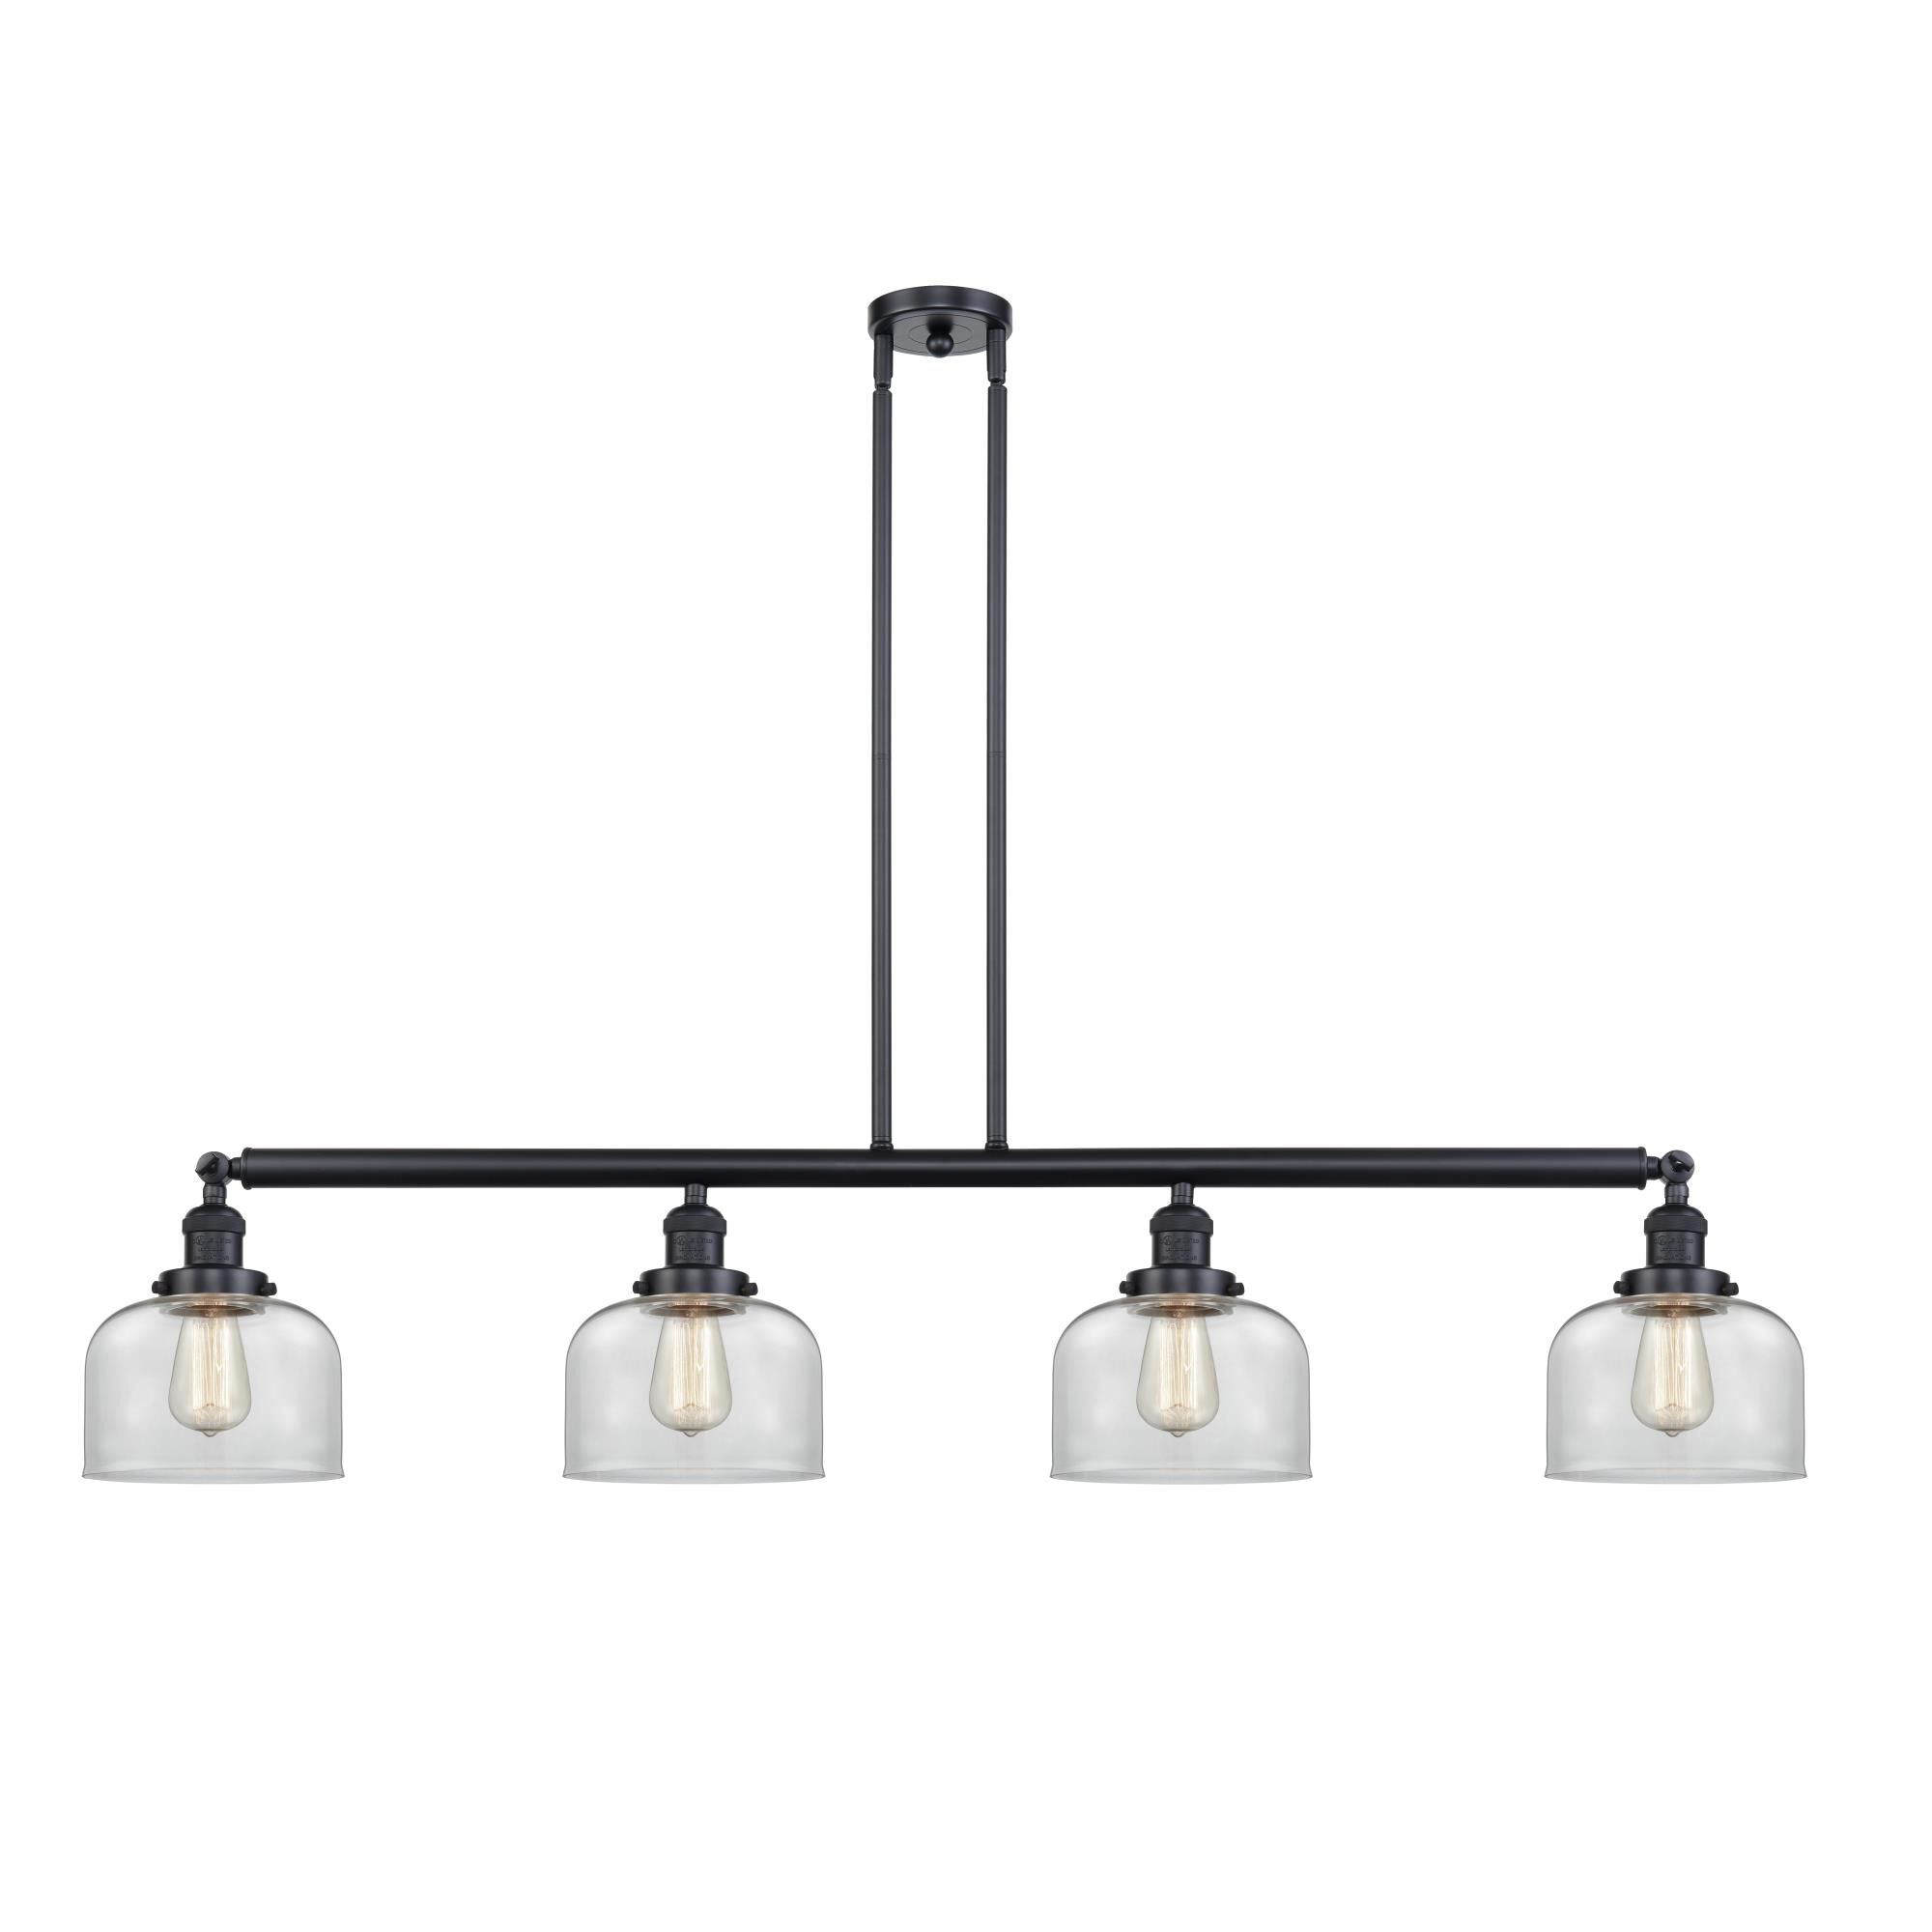 Innovations Lighting Bruno Marashlian Large Bell 52 Inch 4 Light Linear Suspension Light Large Bell - 214-BK-S-G72 - Restoration-Vintage Linear Suspen